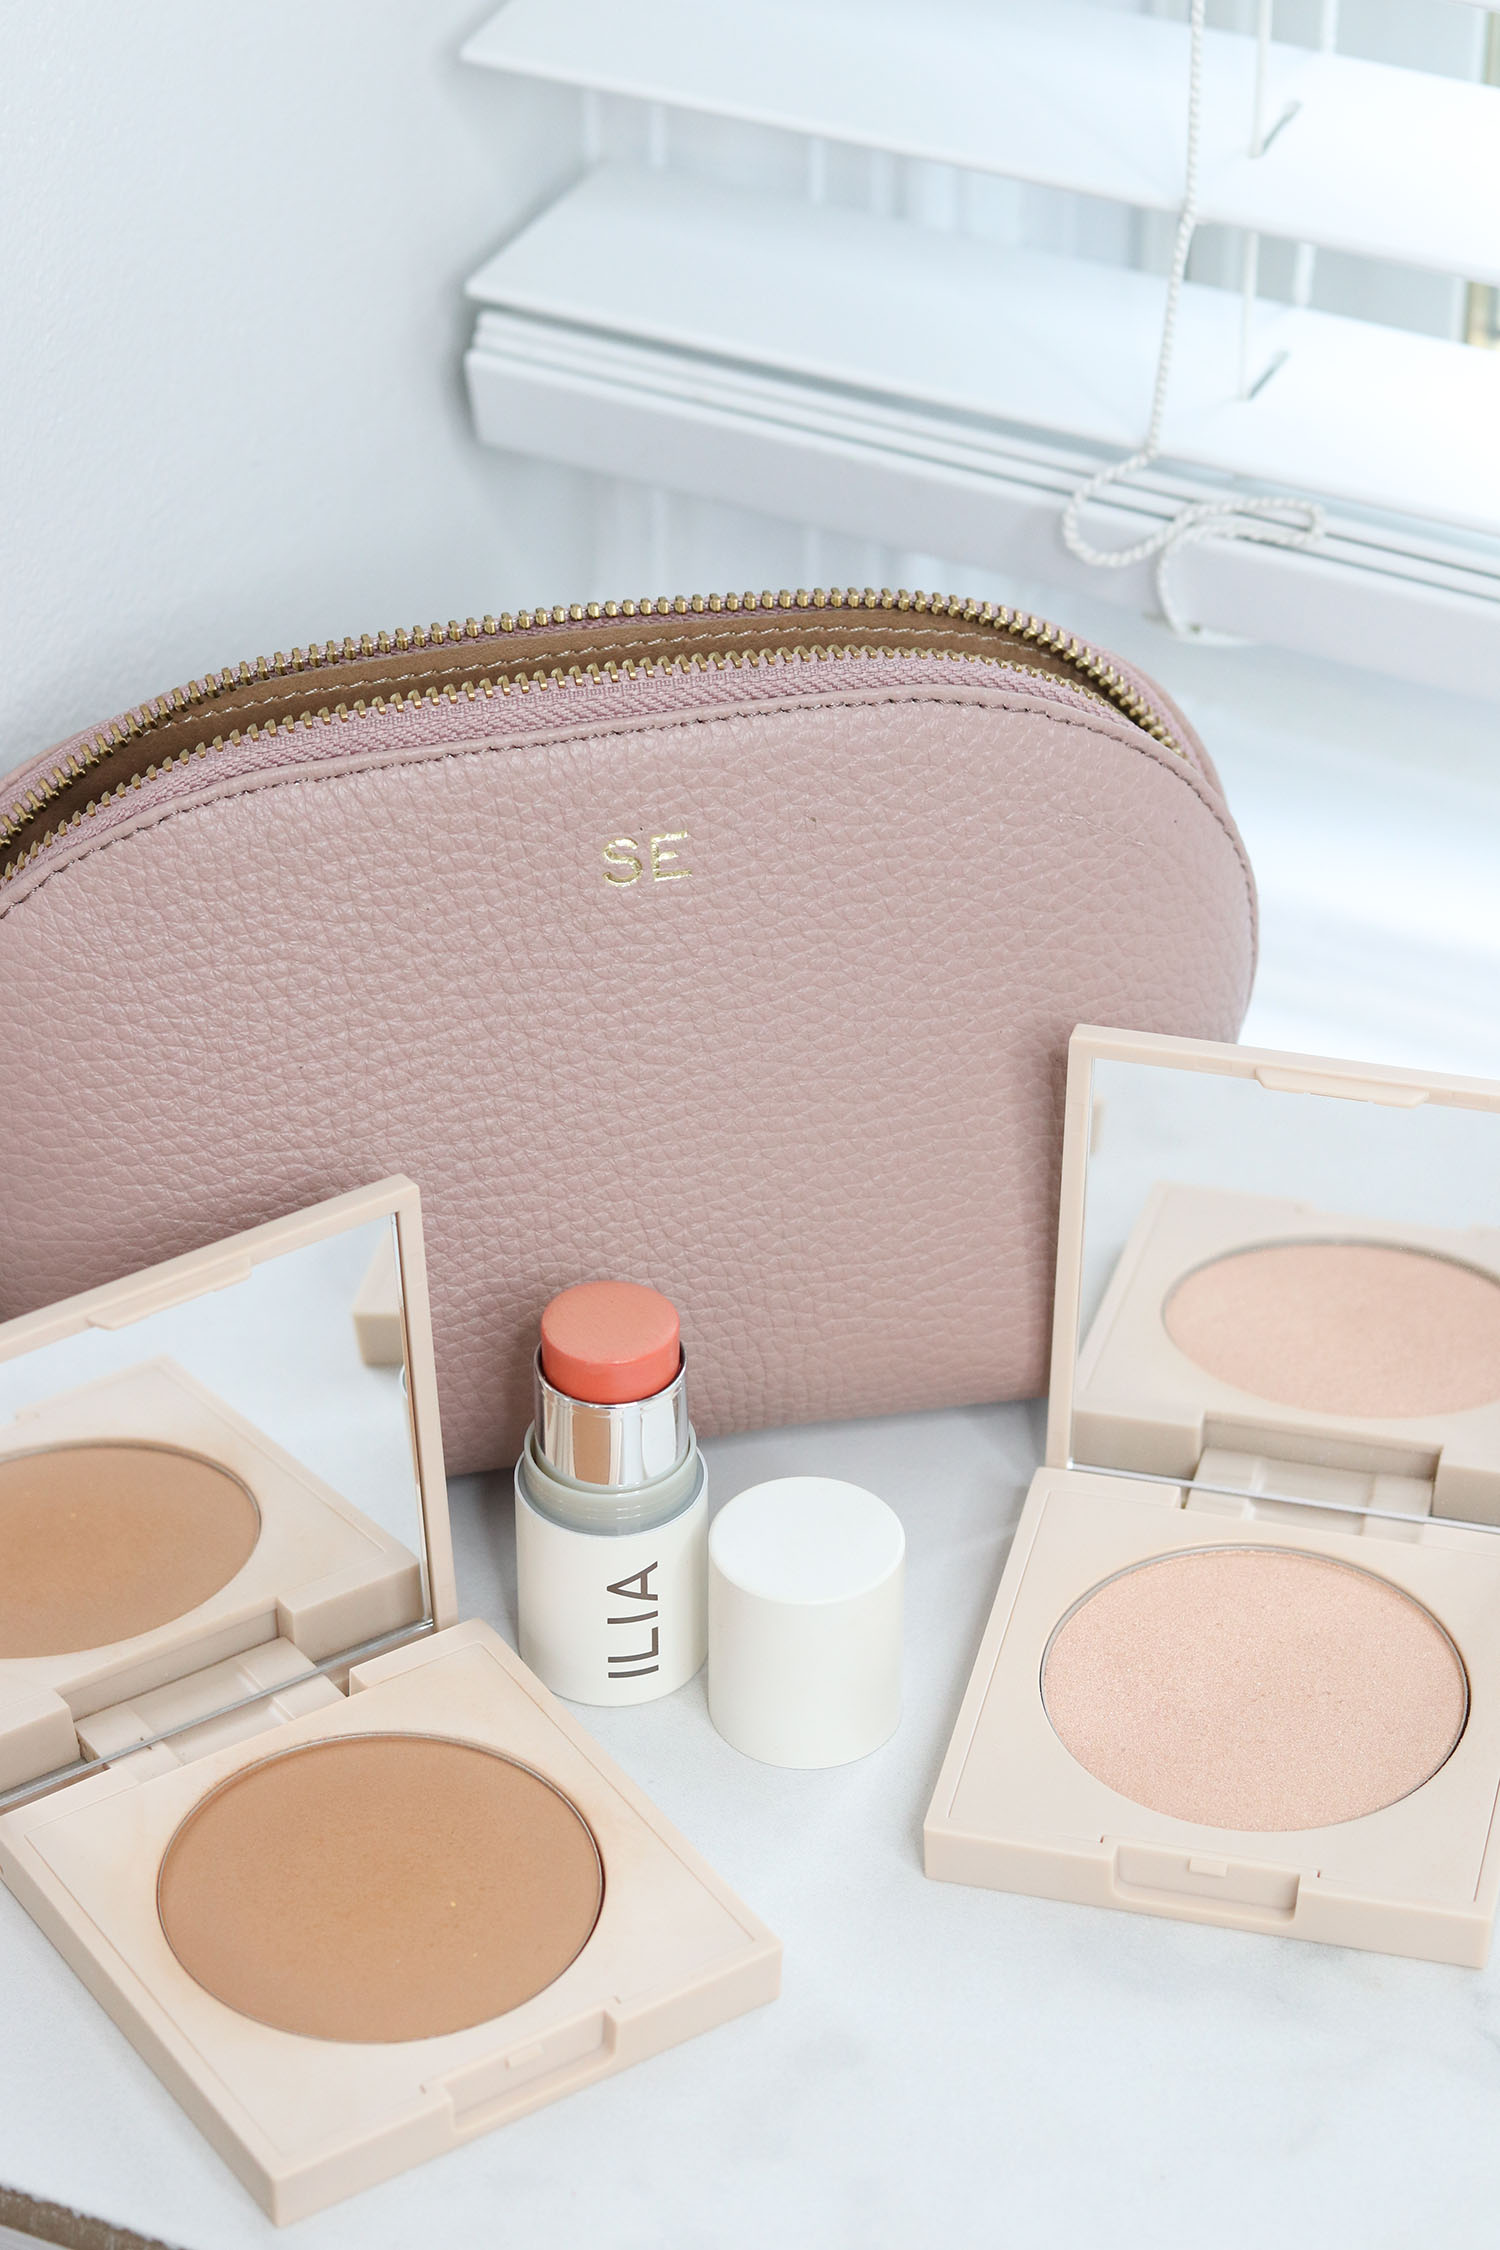 Spring Beauty Haul | Ilia Daylite and Nightlite Highlighter and Bronzer Powders, Ilia Multi Stick I Put a Spell On You